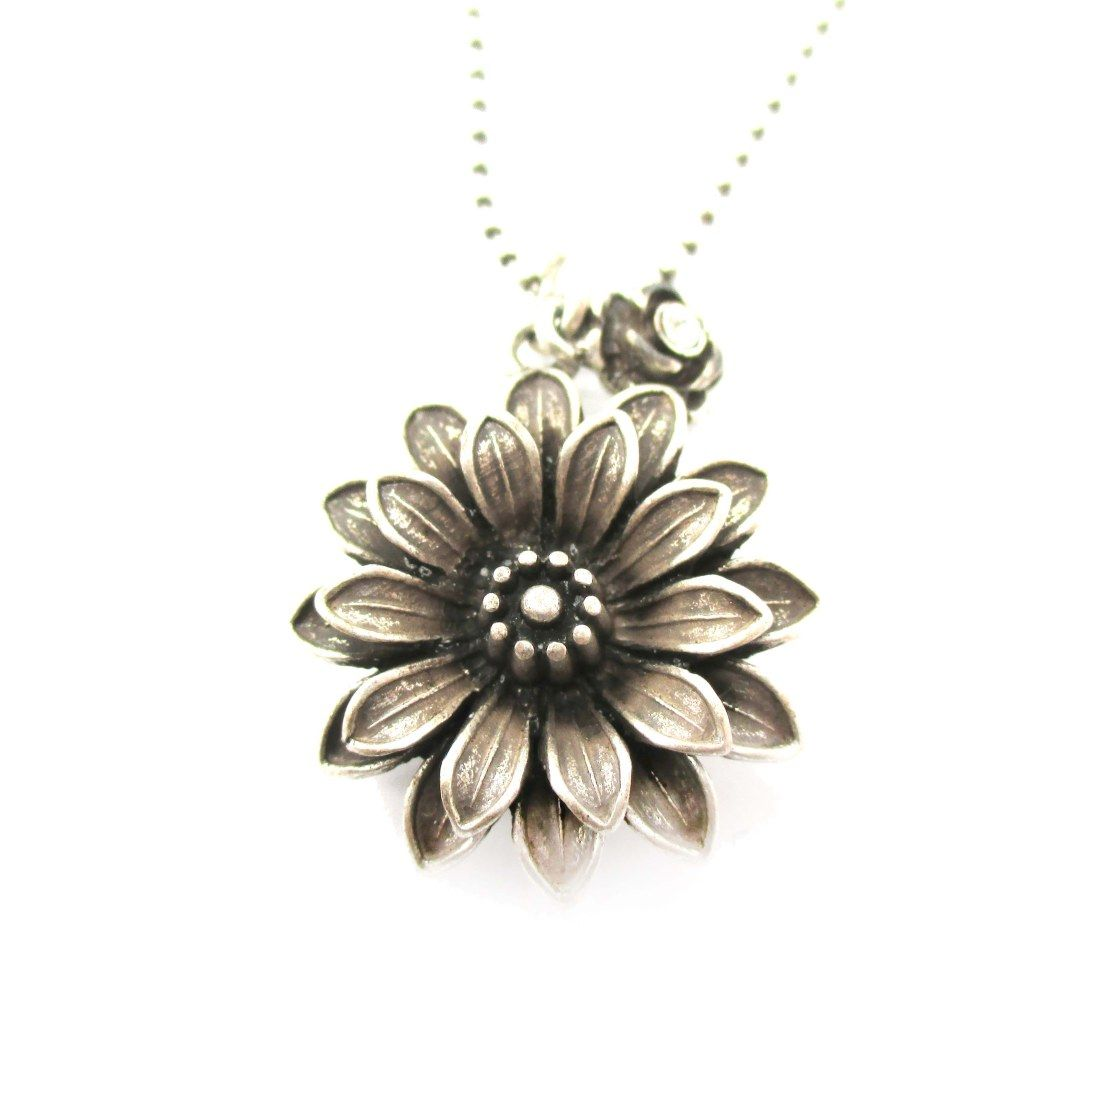 Realistic Dahlia Flower With Pointed Petals Floral Pendant Necklace In Silver From Dotoly Animal Jewelry Floral Pendant Necklace Floral Pendant Pendant Necklace